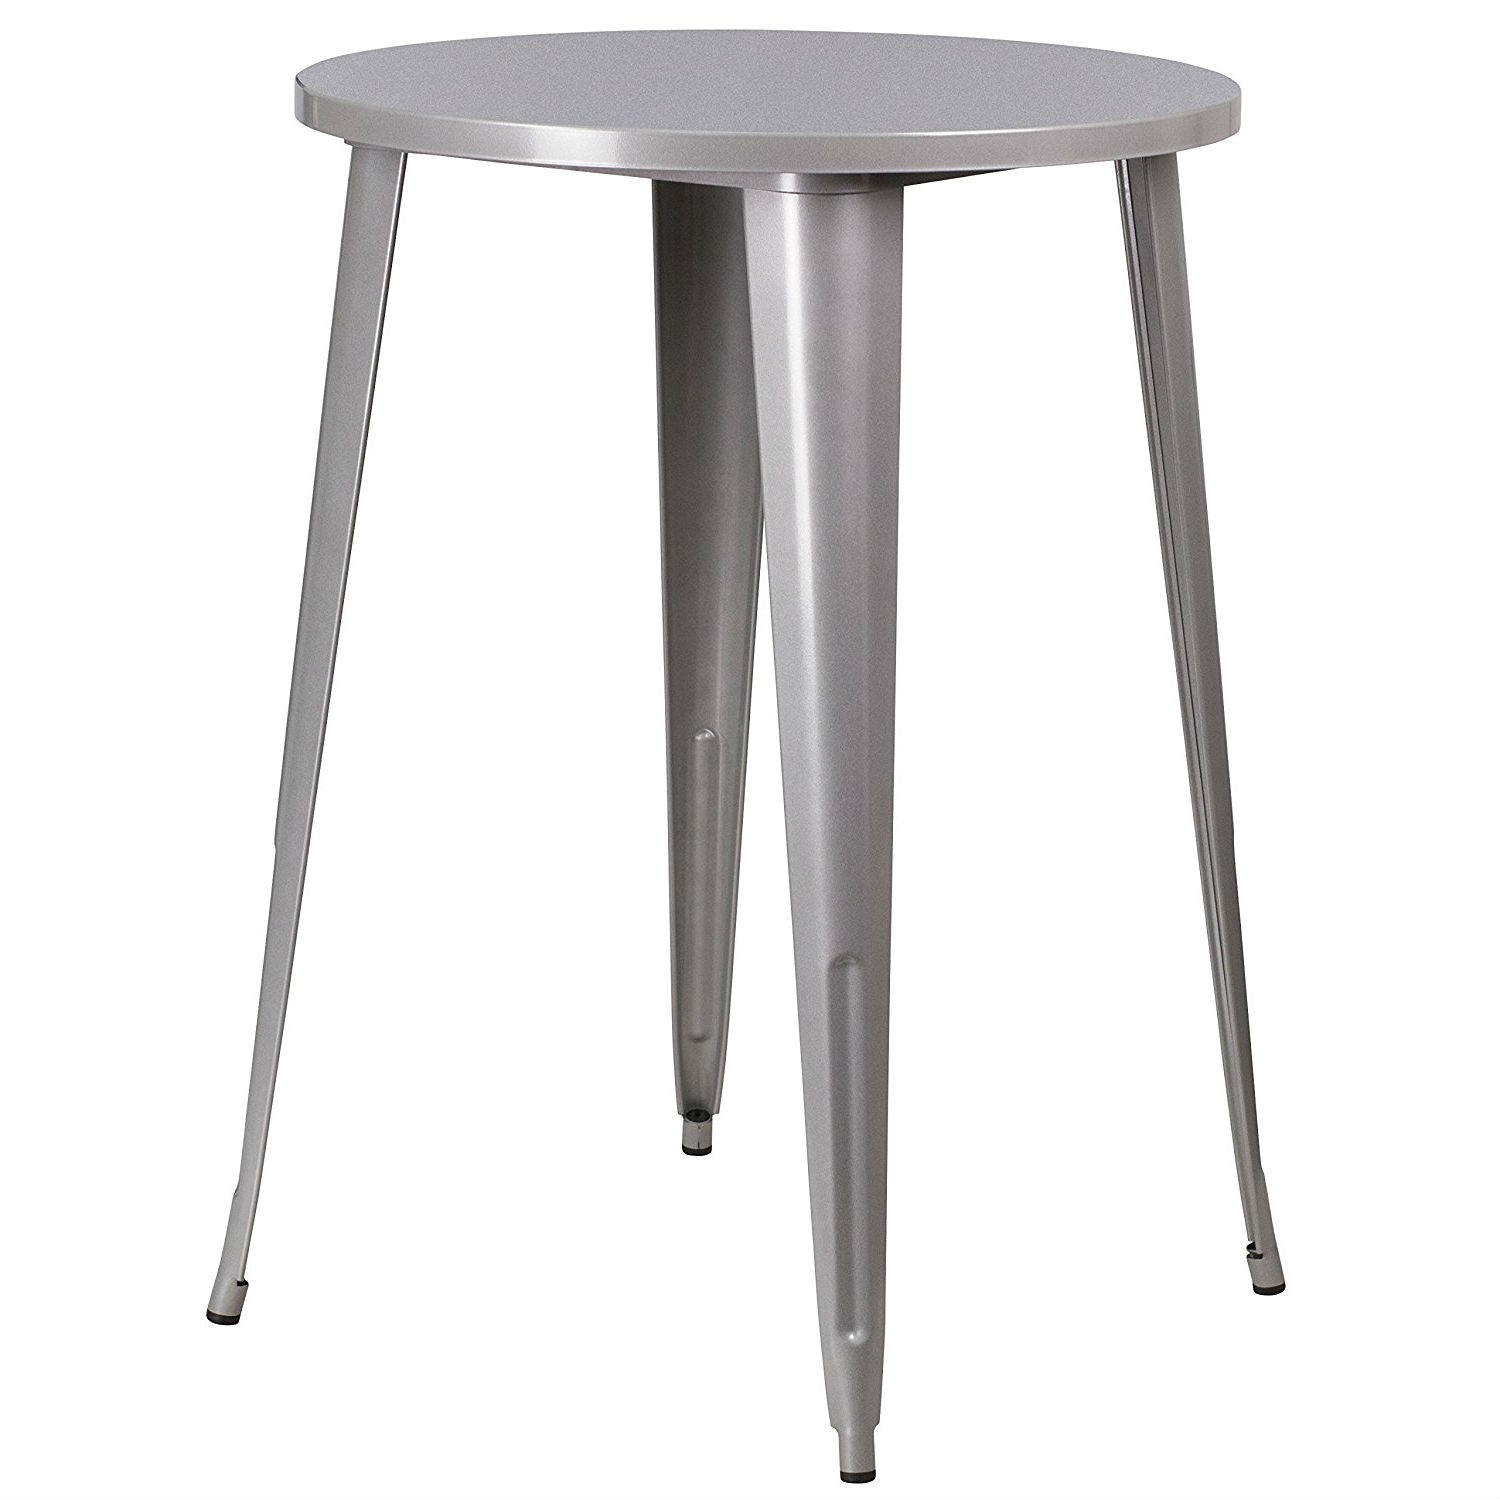 Silver Patio Furniture.Outdoor 30 Inch Round Metal Cafe Bar Patio Table In Silver